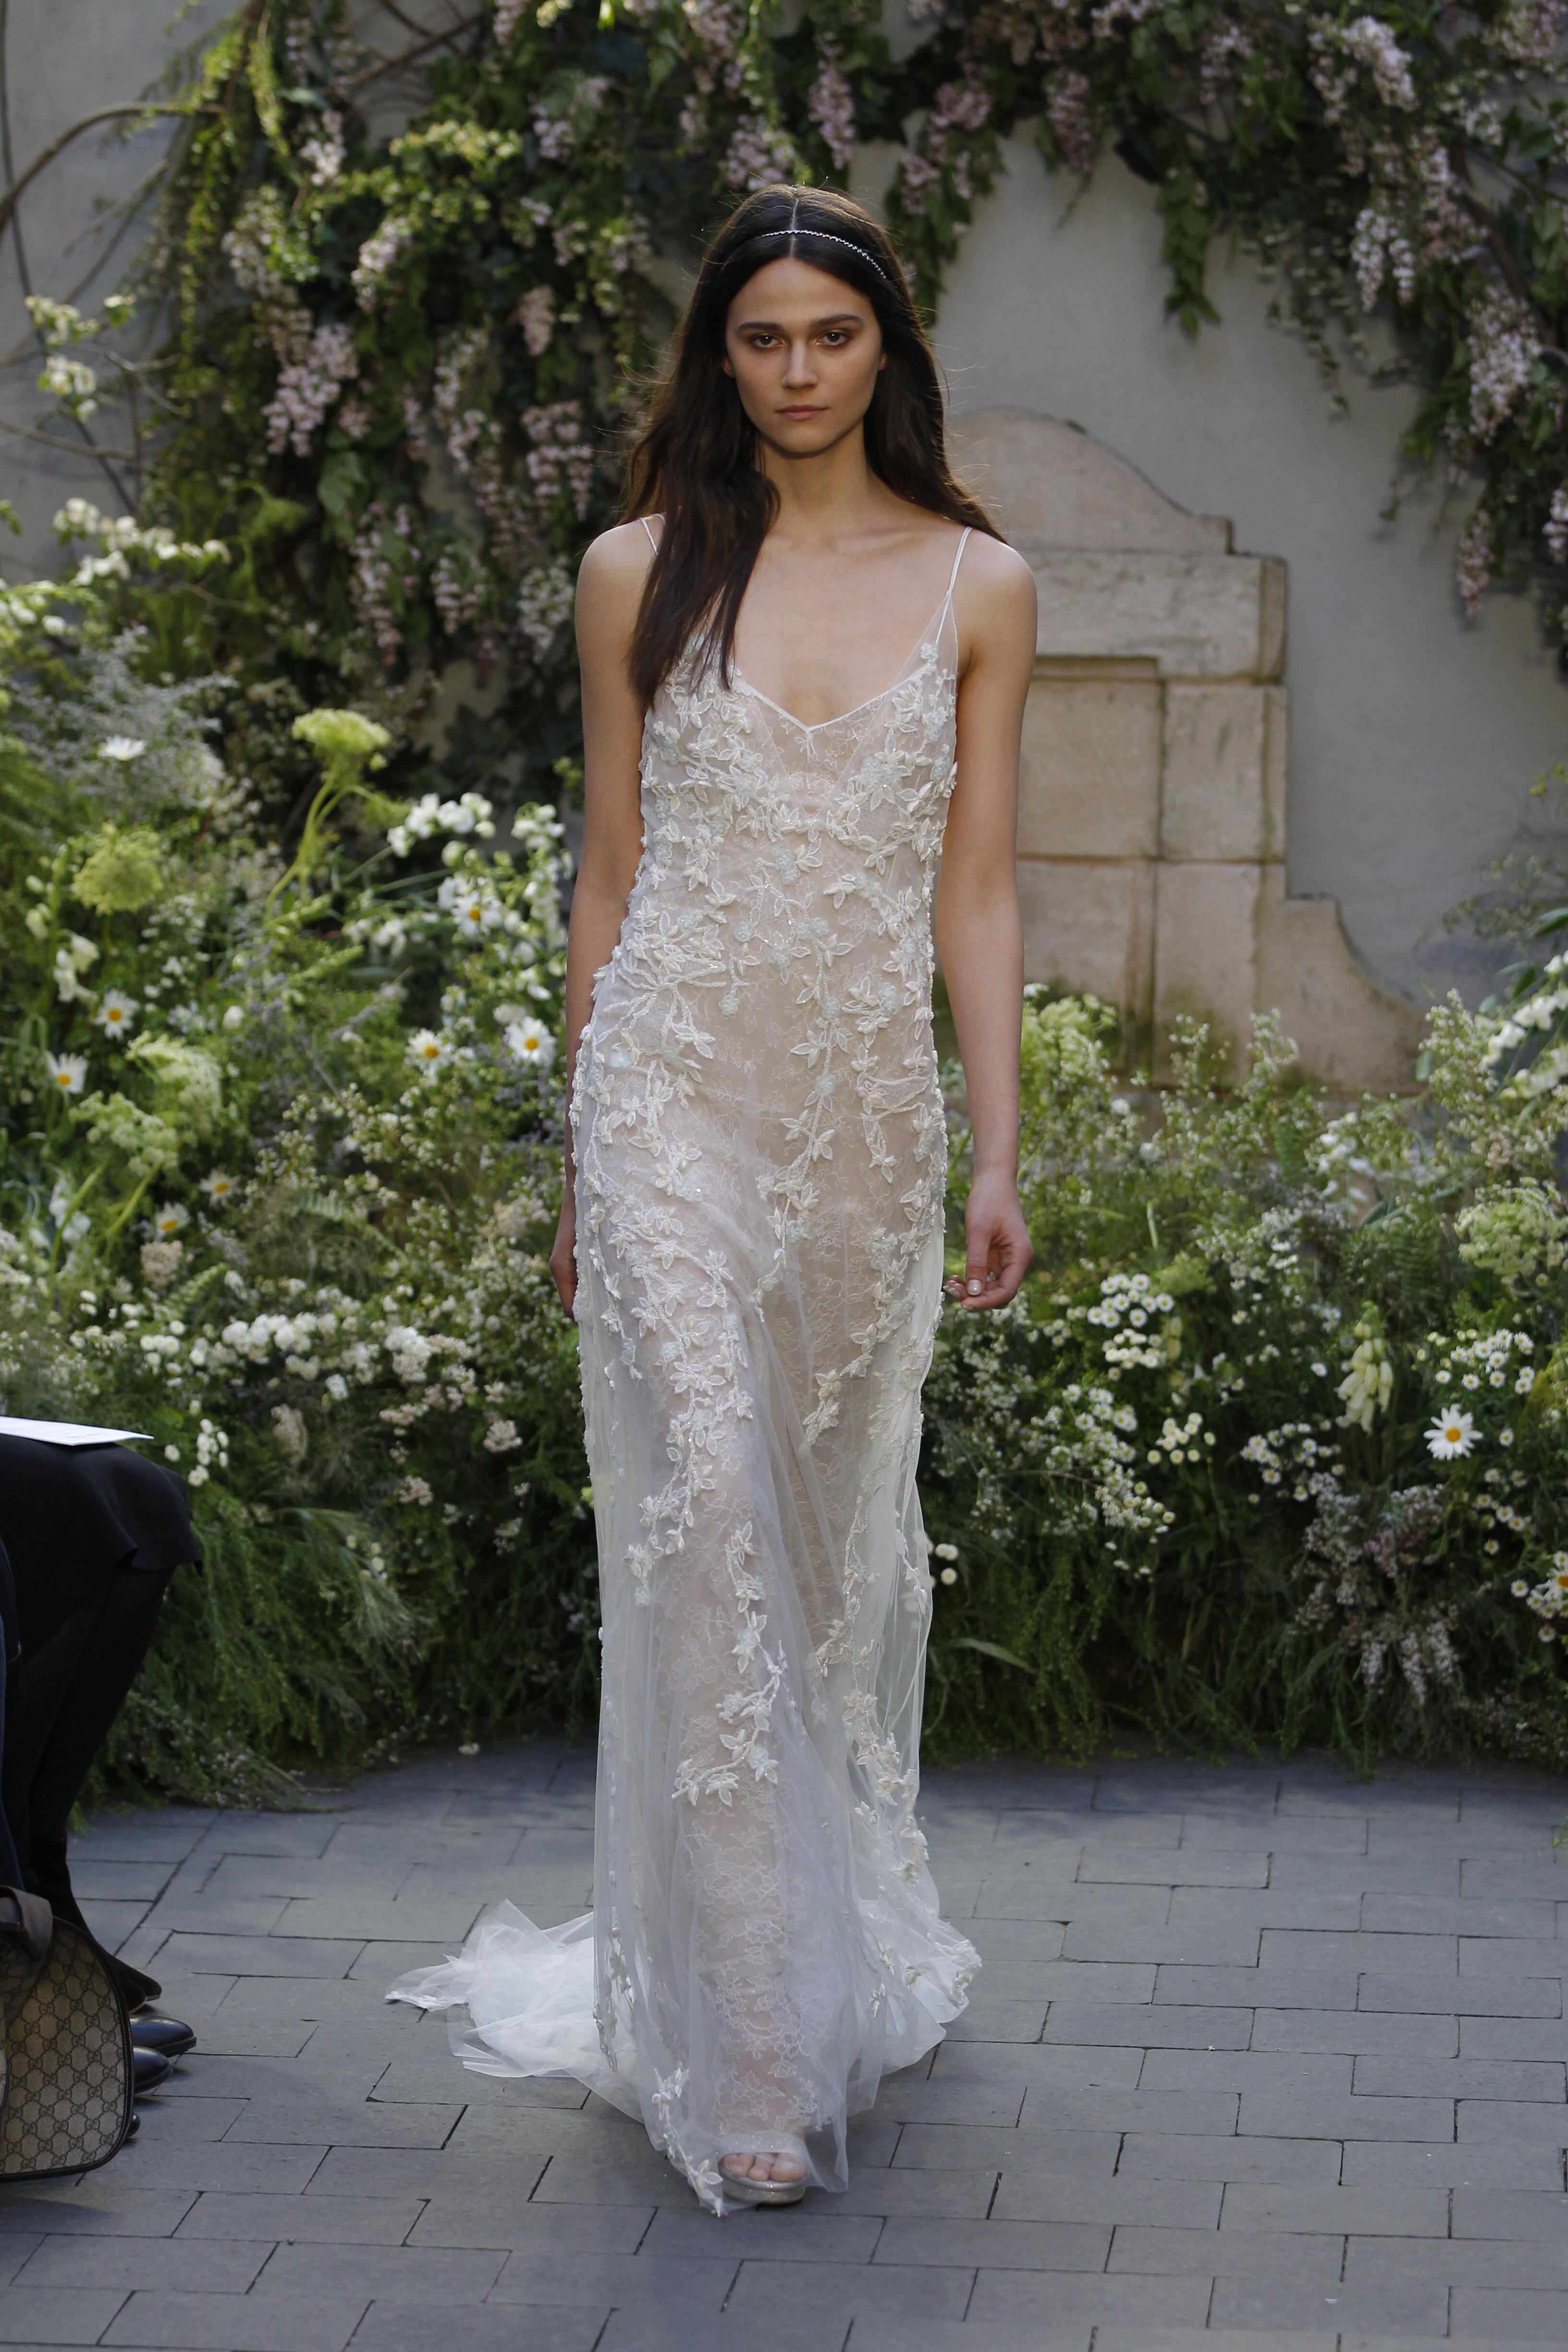 givenchy nobody knows how to combine uniqueness extravagance and simplicity better than givenchy does it and their wedding dresses are proof of this